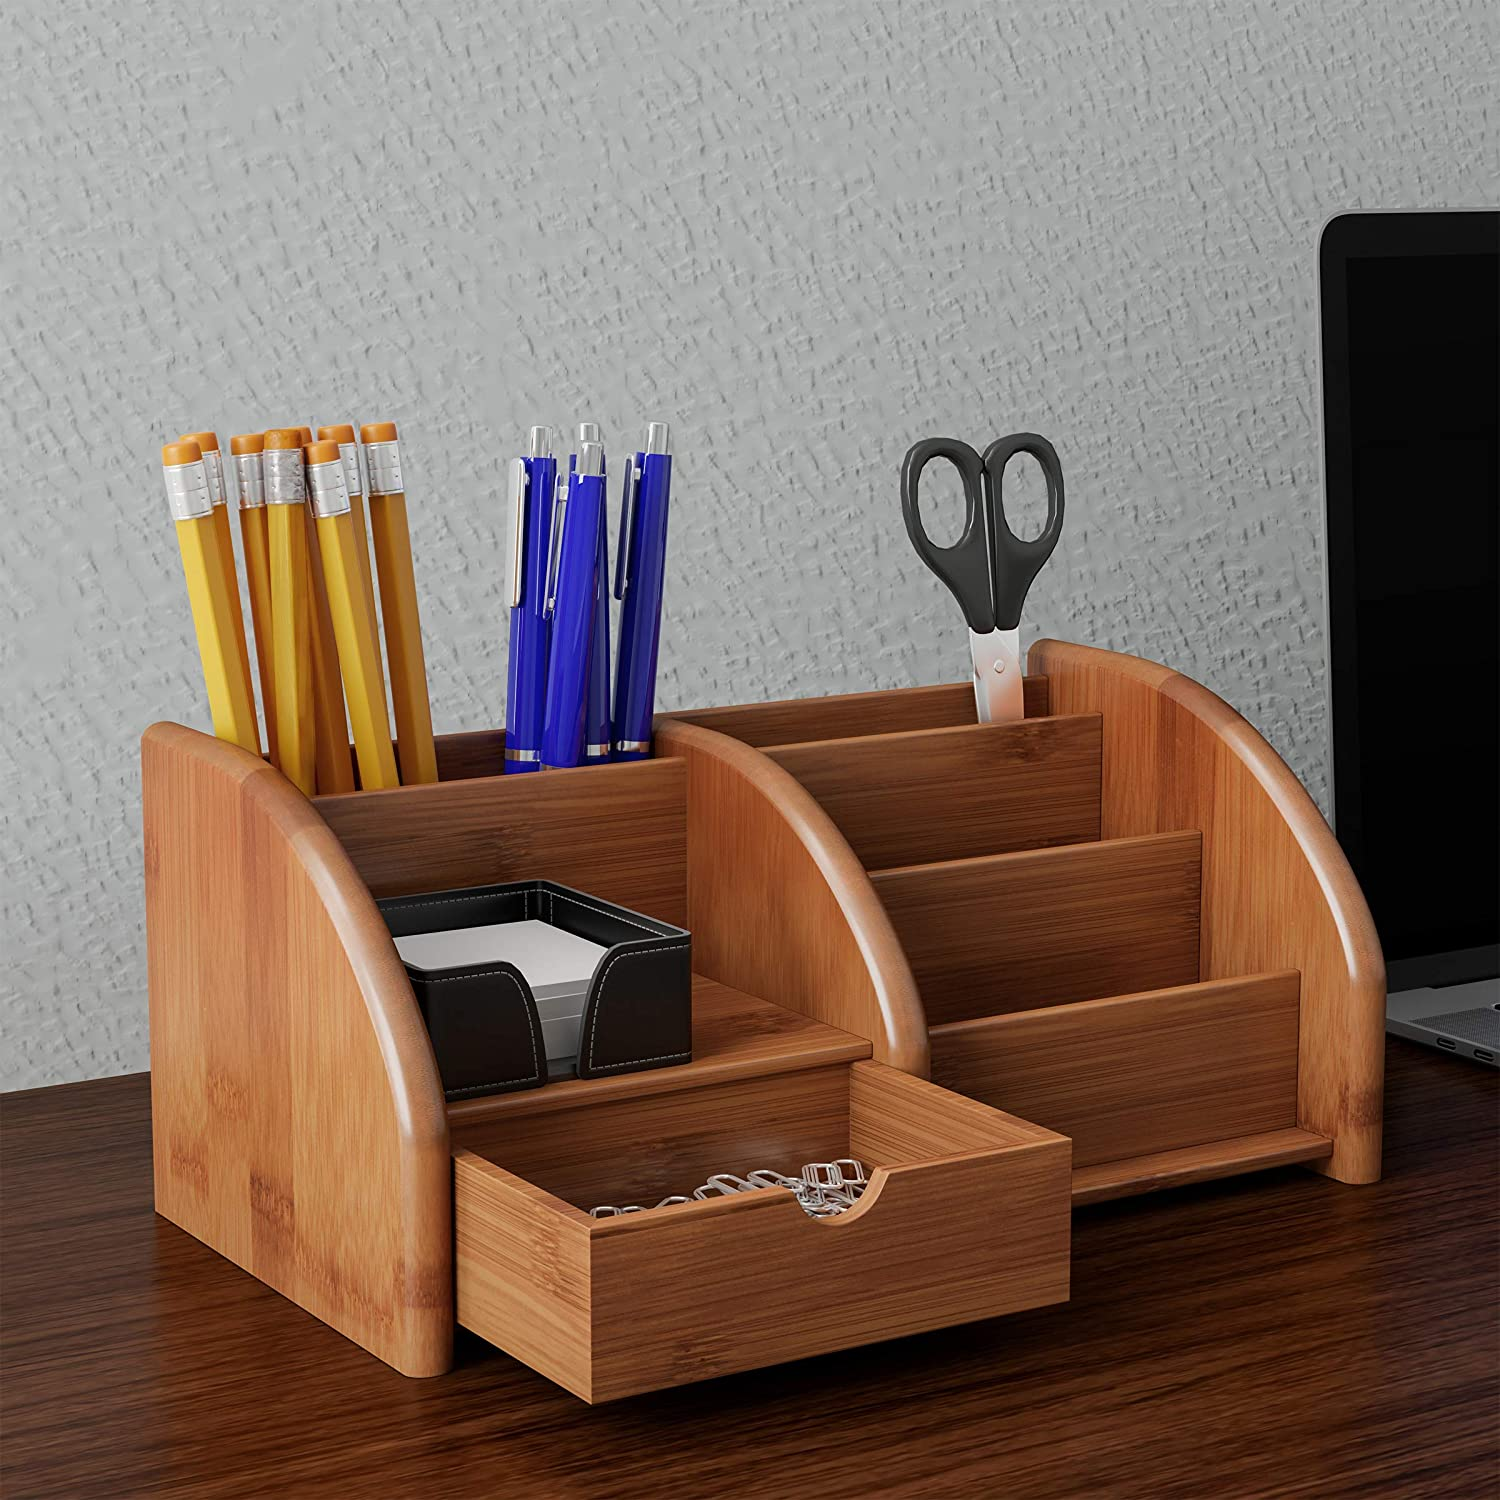 Lavish Home 5 Compartment Bamboo Desk Organizer-Wooden Supply Storage Accessory with Drawers and Natural Finish for Home, School or Office